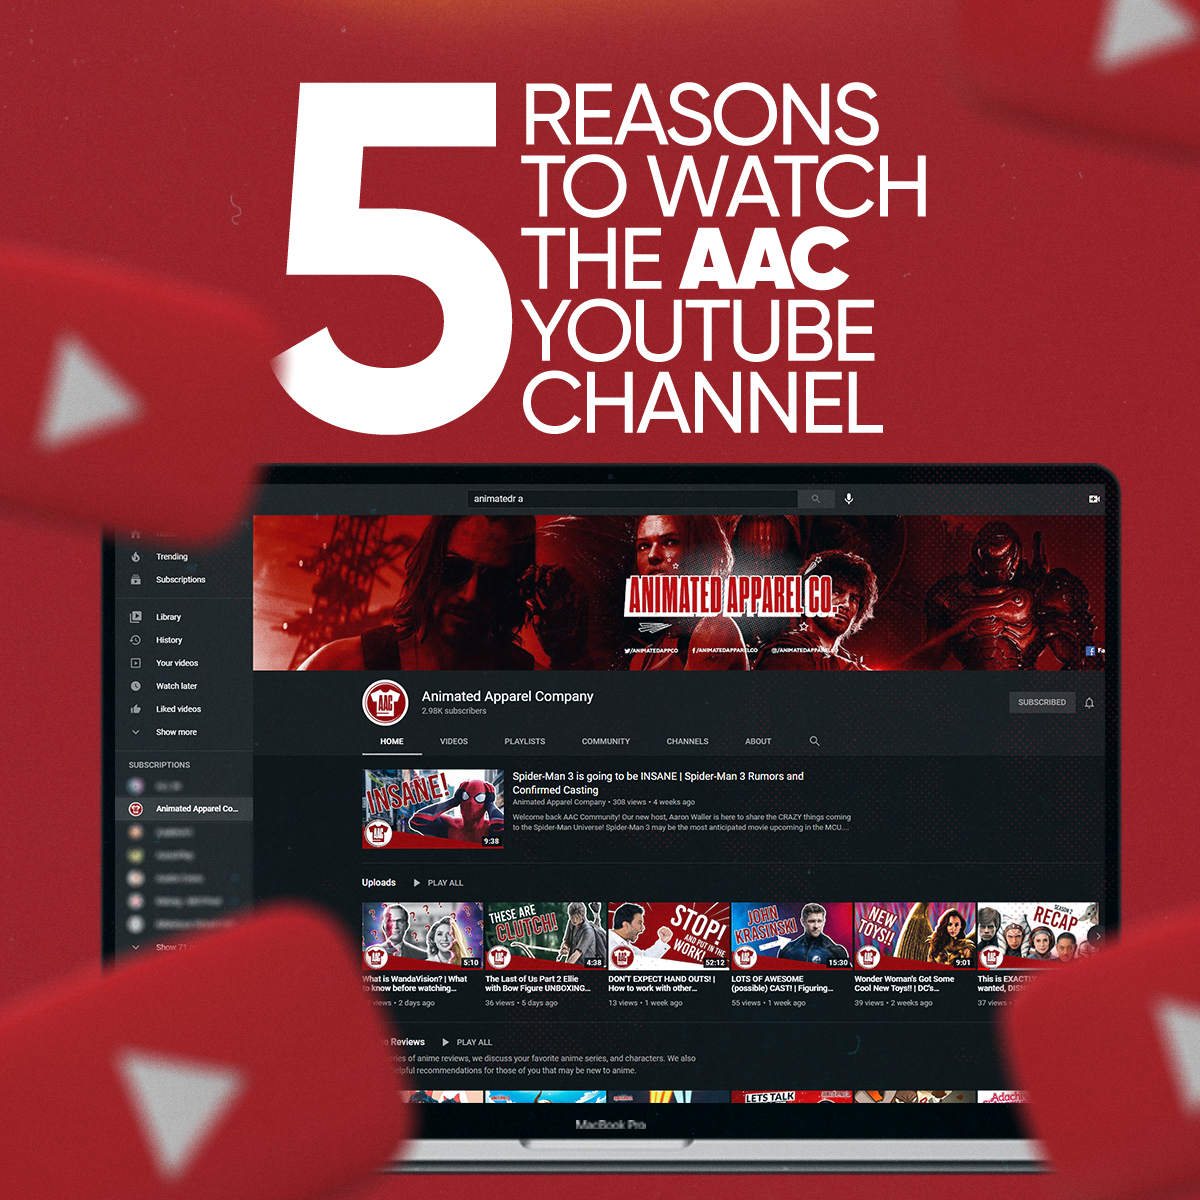 5 reasons you should check out our YouTube Channel!